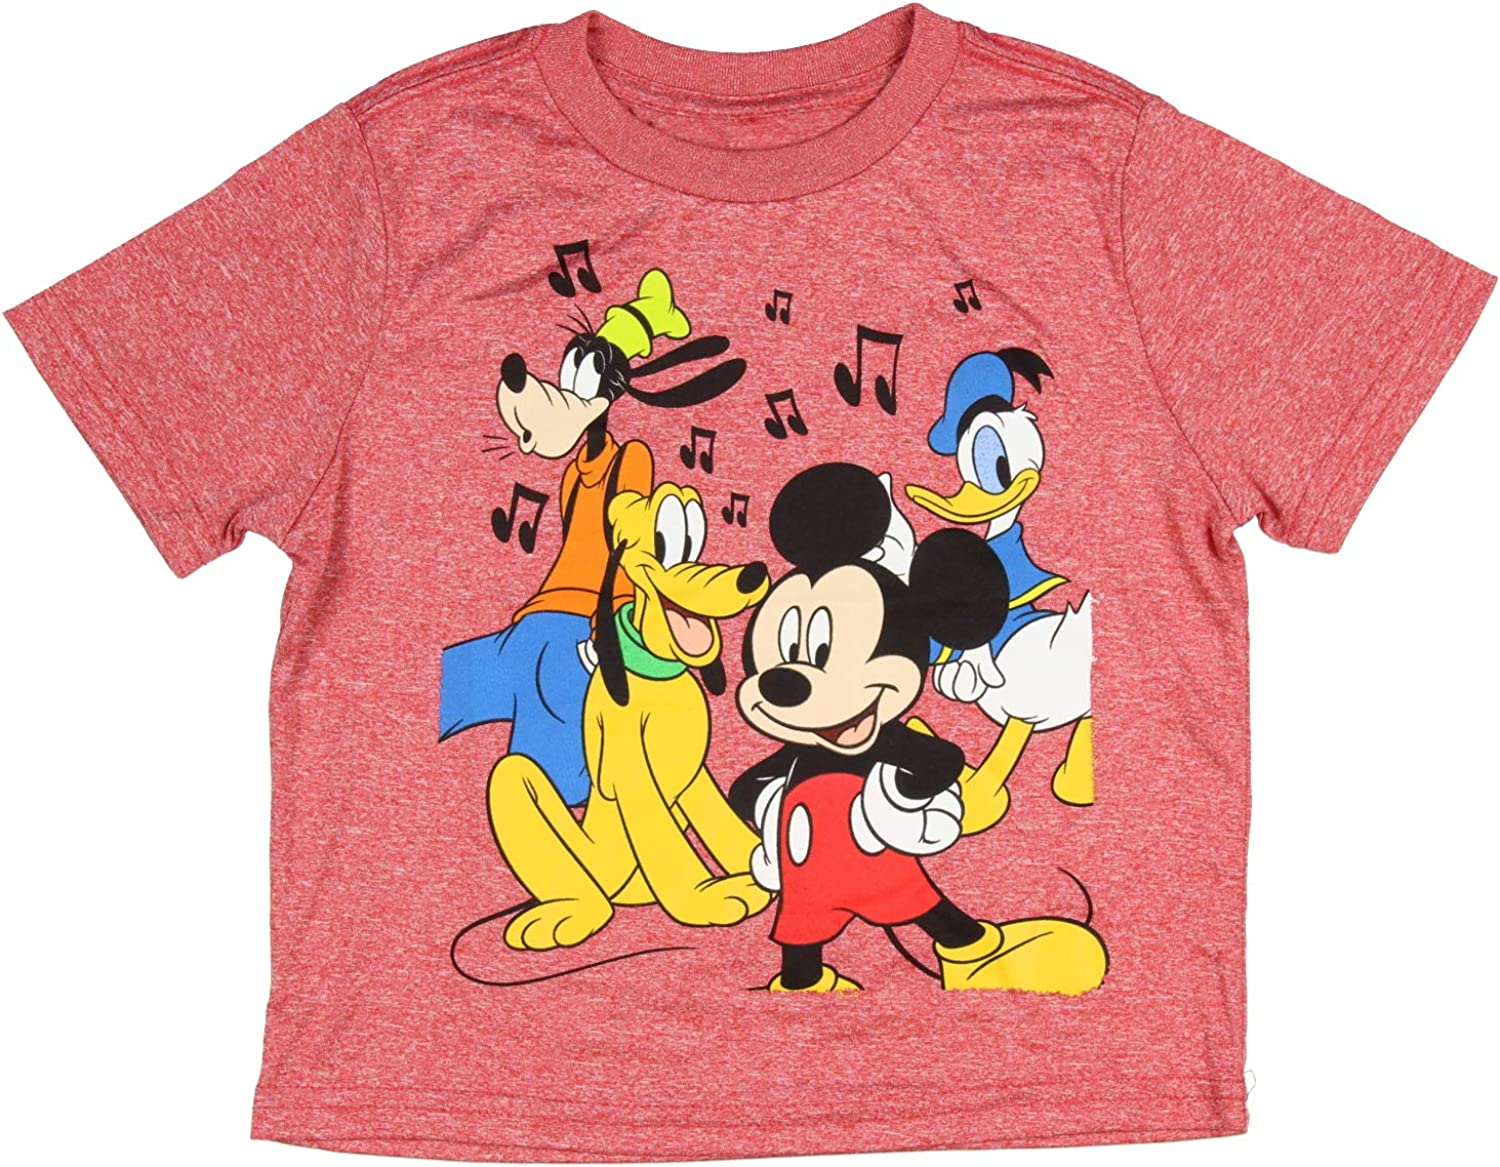 Disney Mickey Mouse Pluto Goofy Donald Duck Music Toddler Shirt